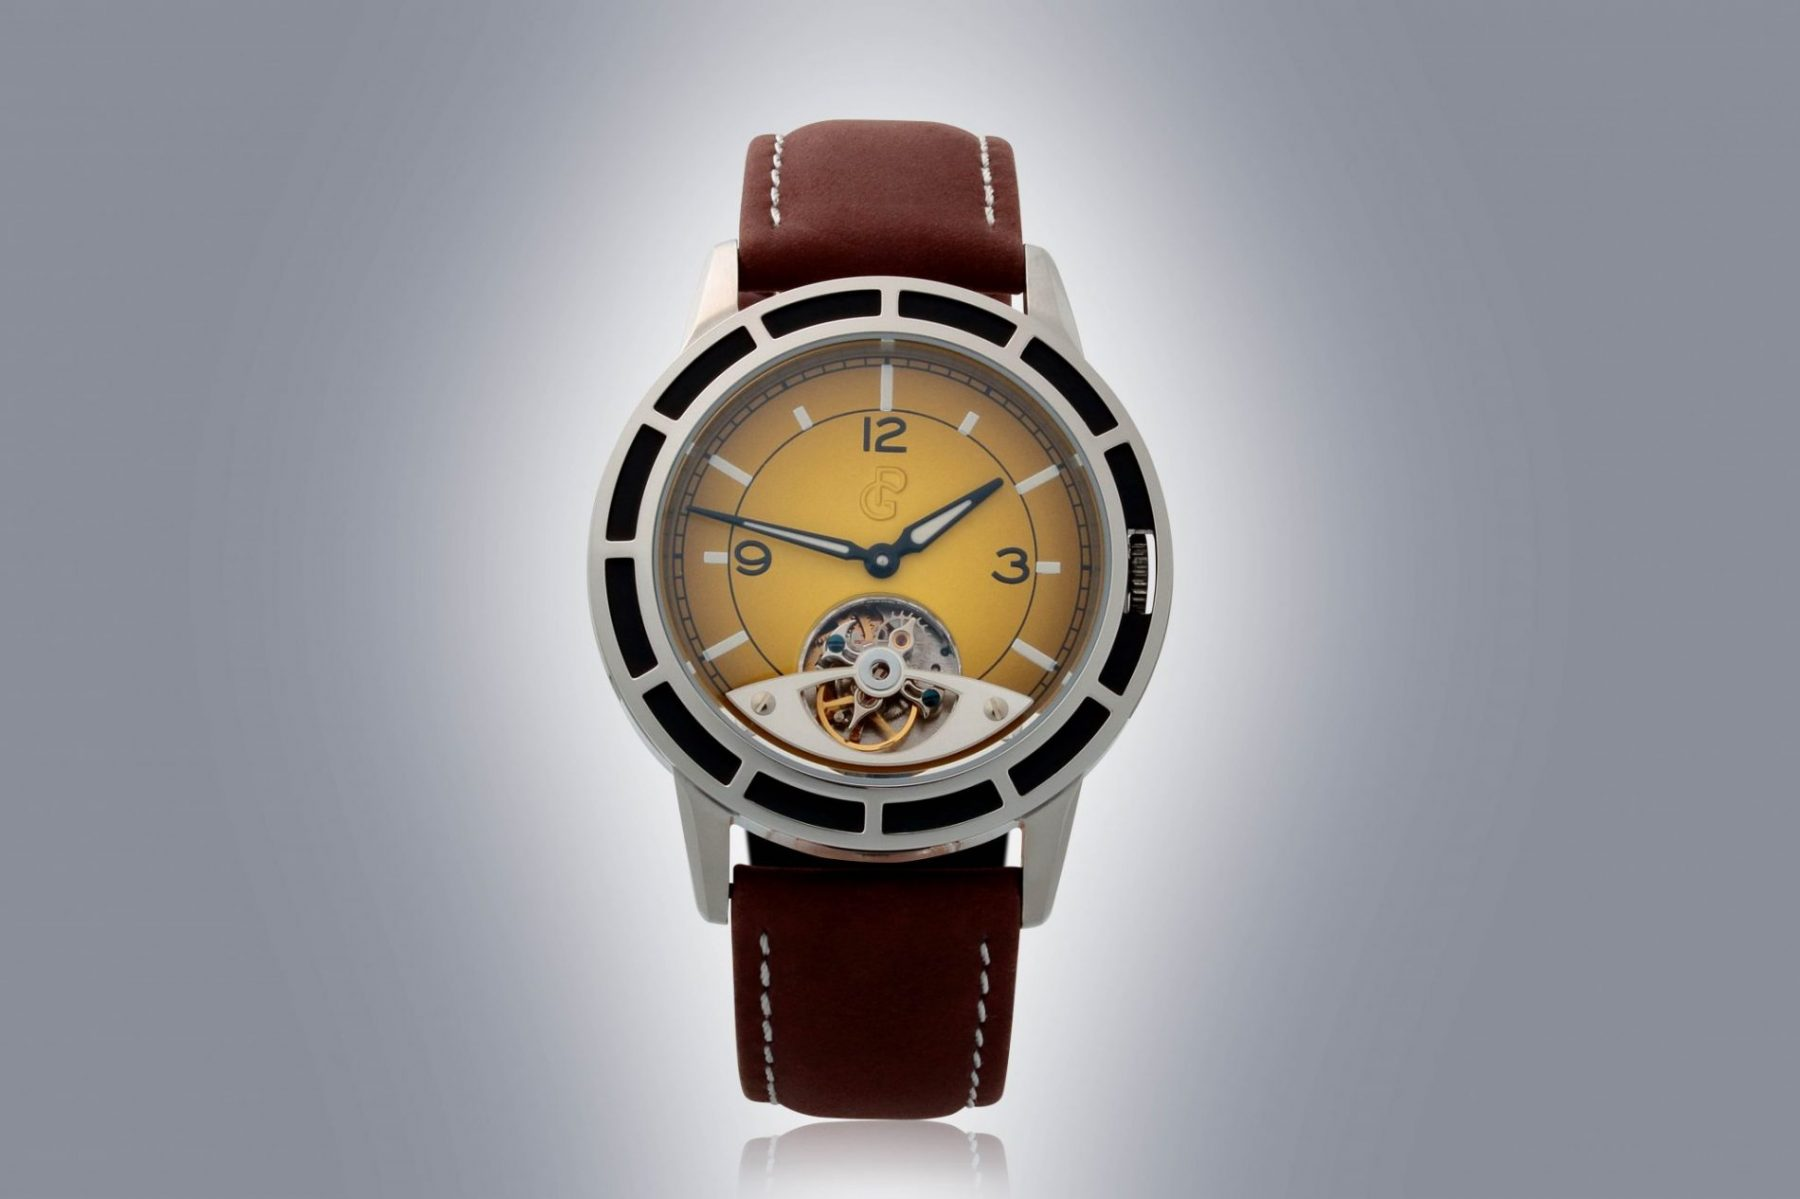 PIERRE GASTON TOURBILLON WATCH #PGT.58.720